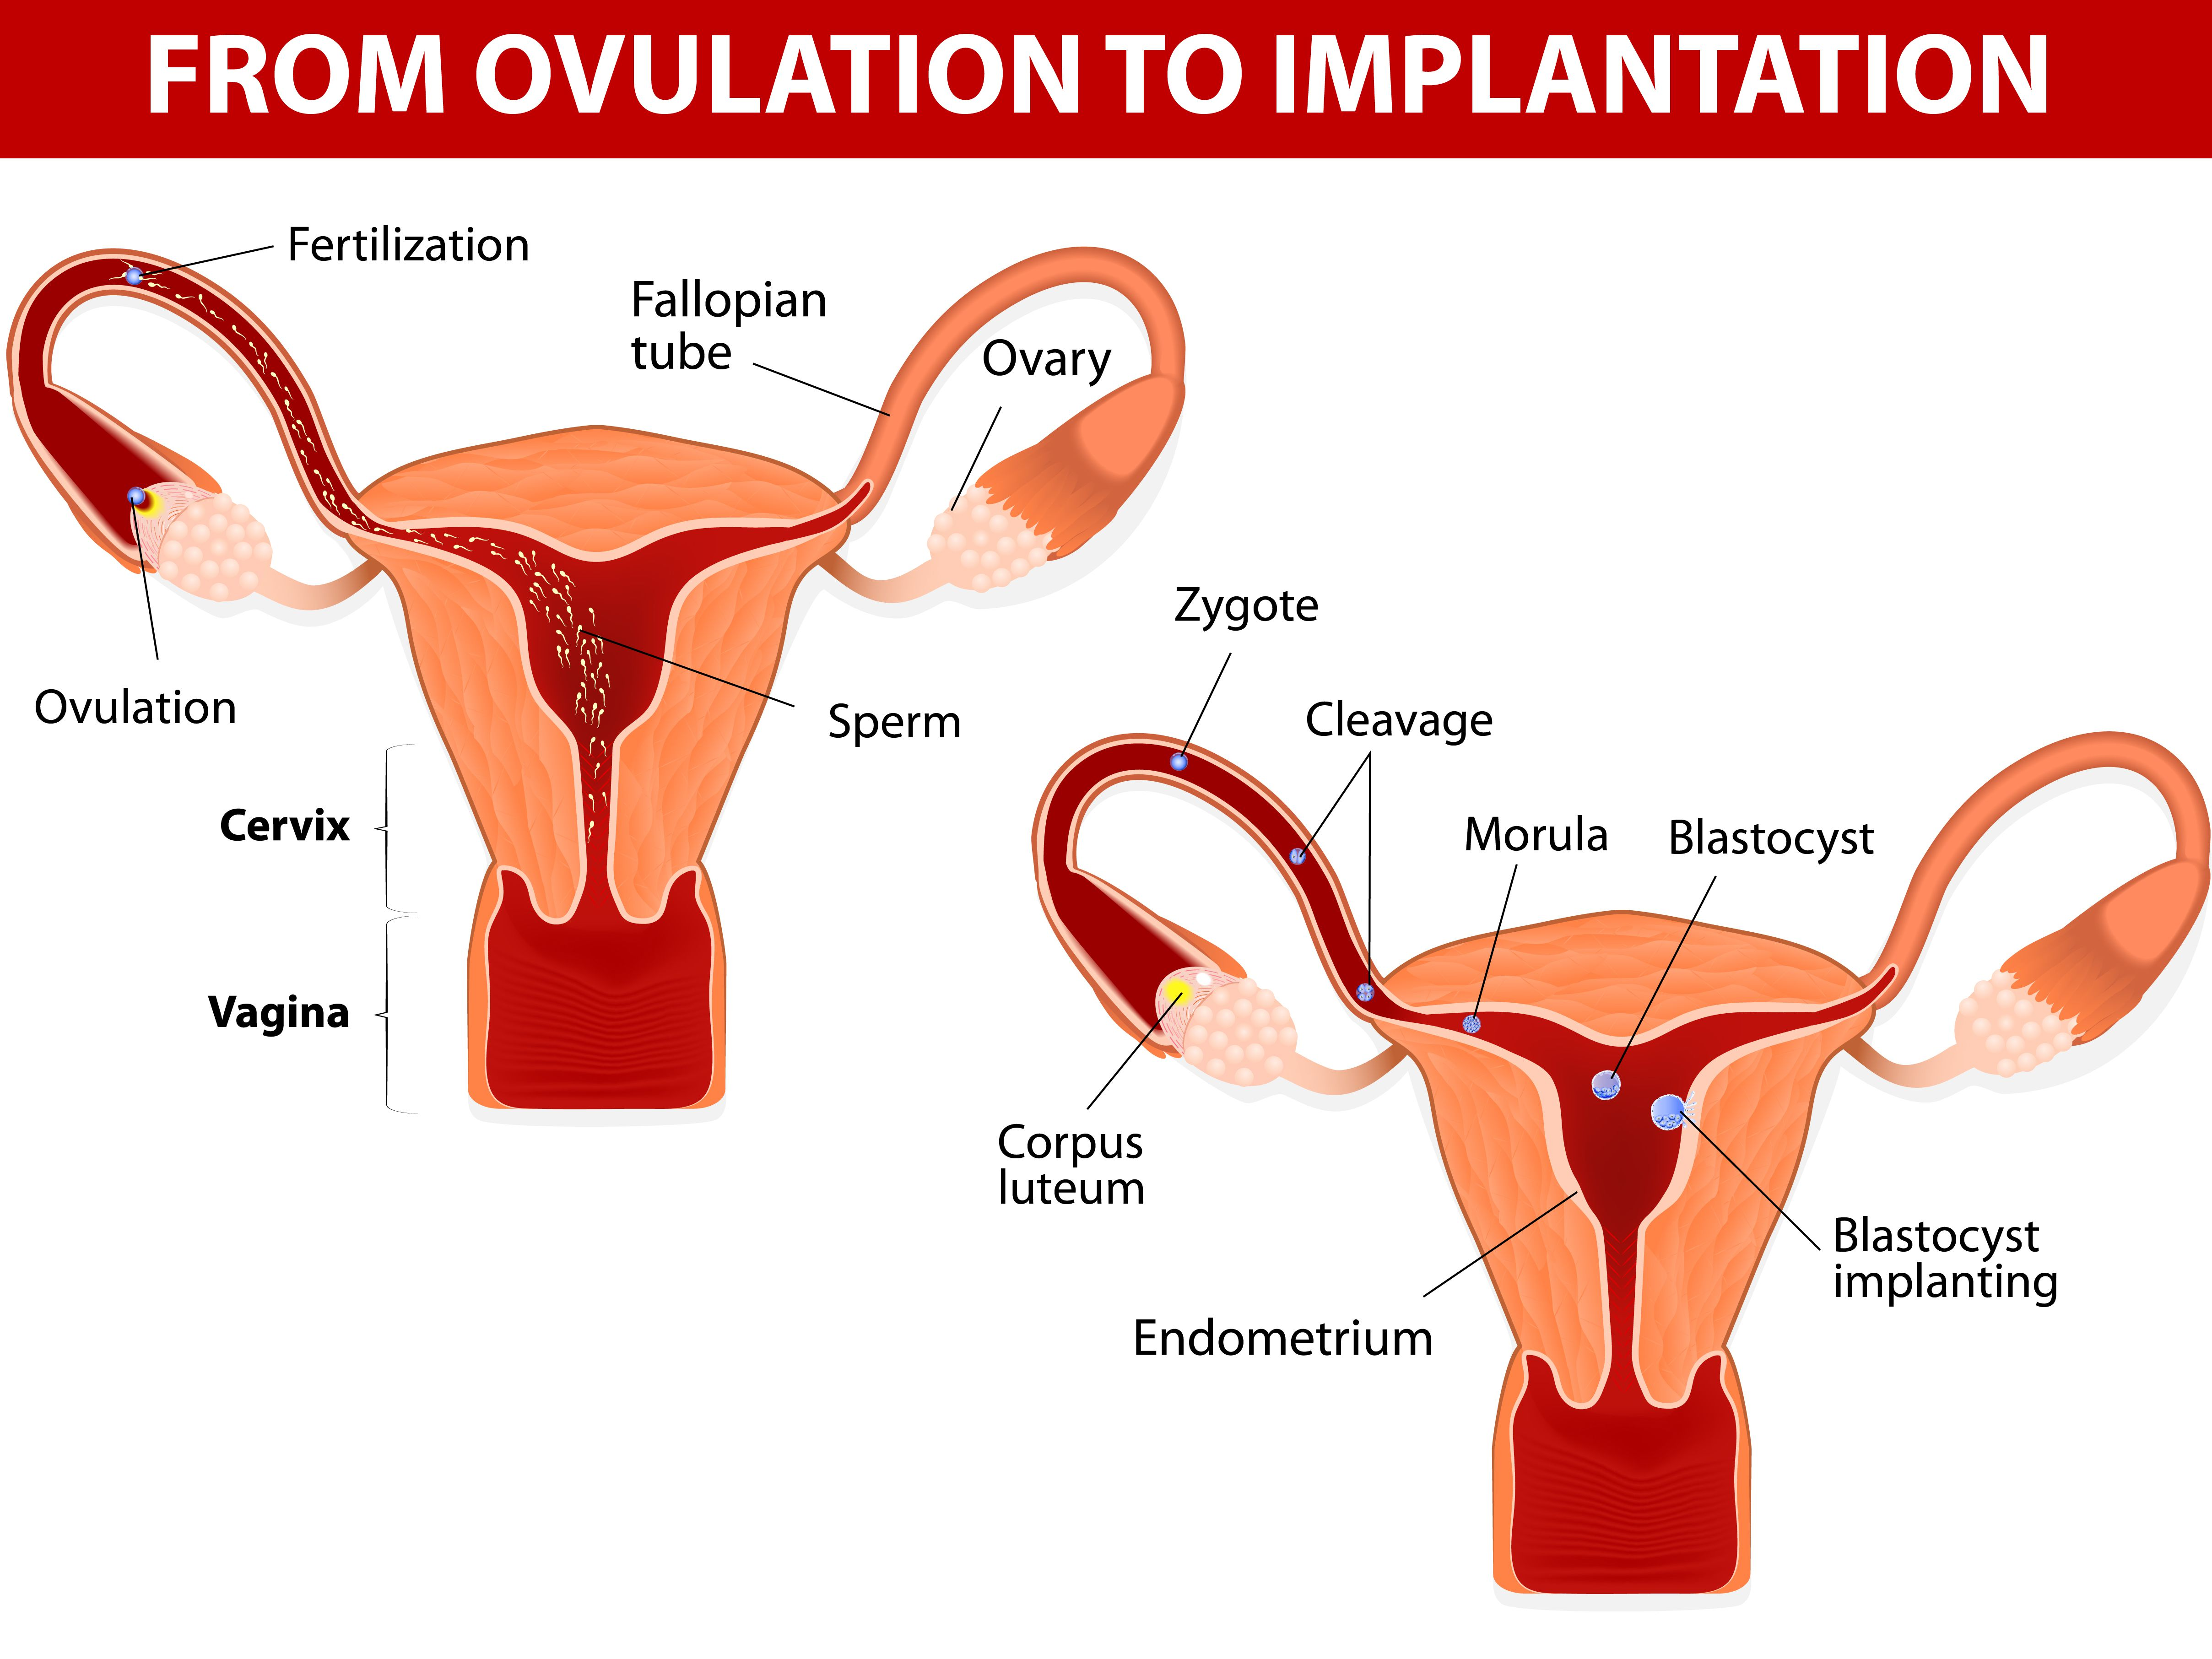 Overview of the Corpus Luteum